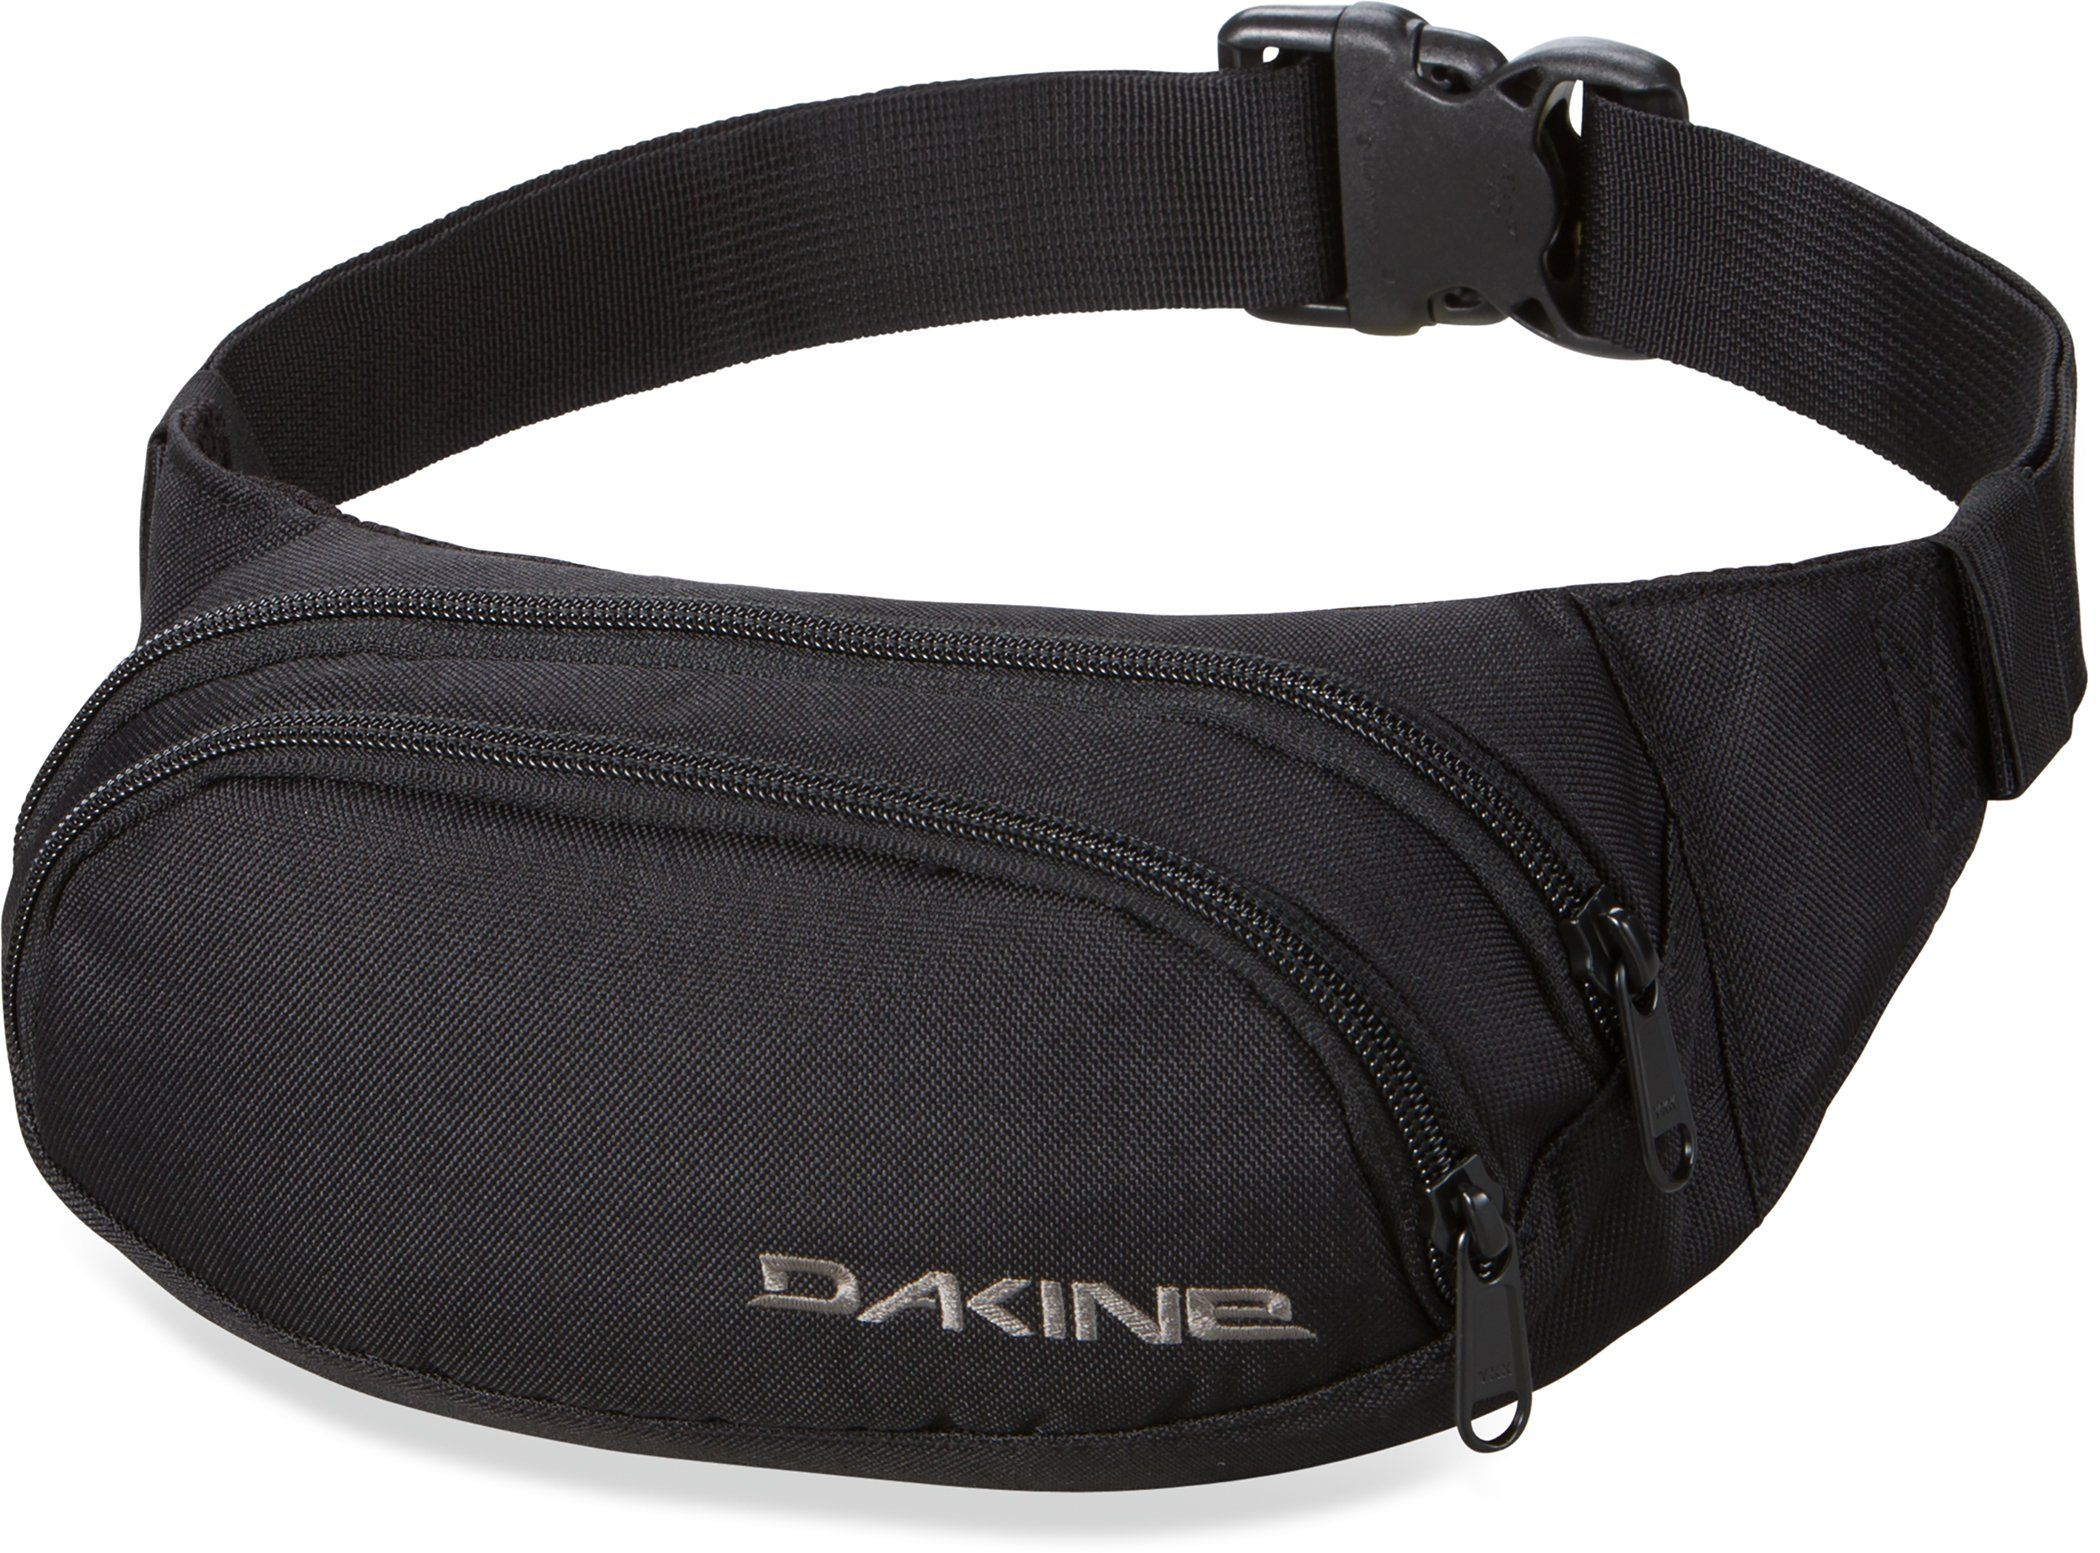 Dakine Hip Pack Lumbar Pack, One Size, Black Dakine